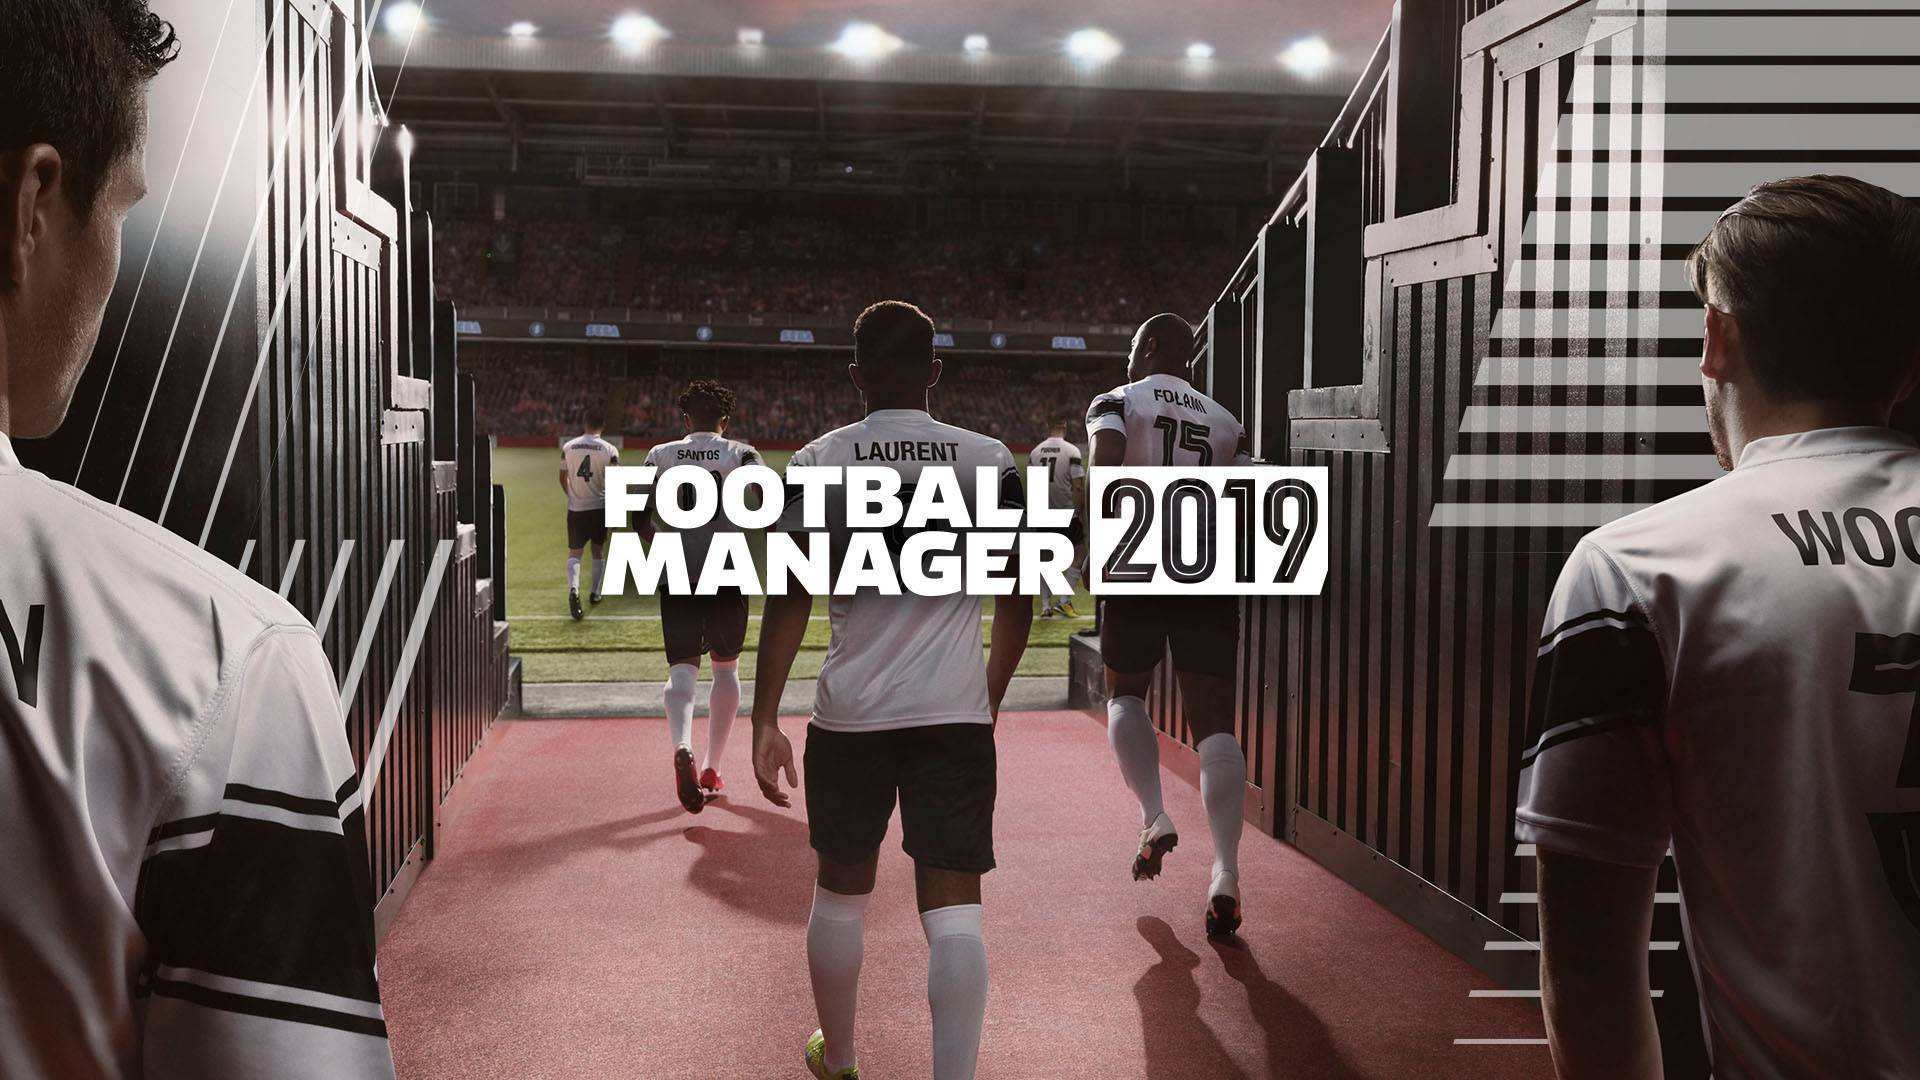 Article title about Football Manager 2019